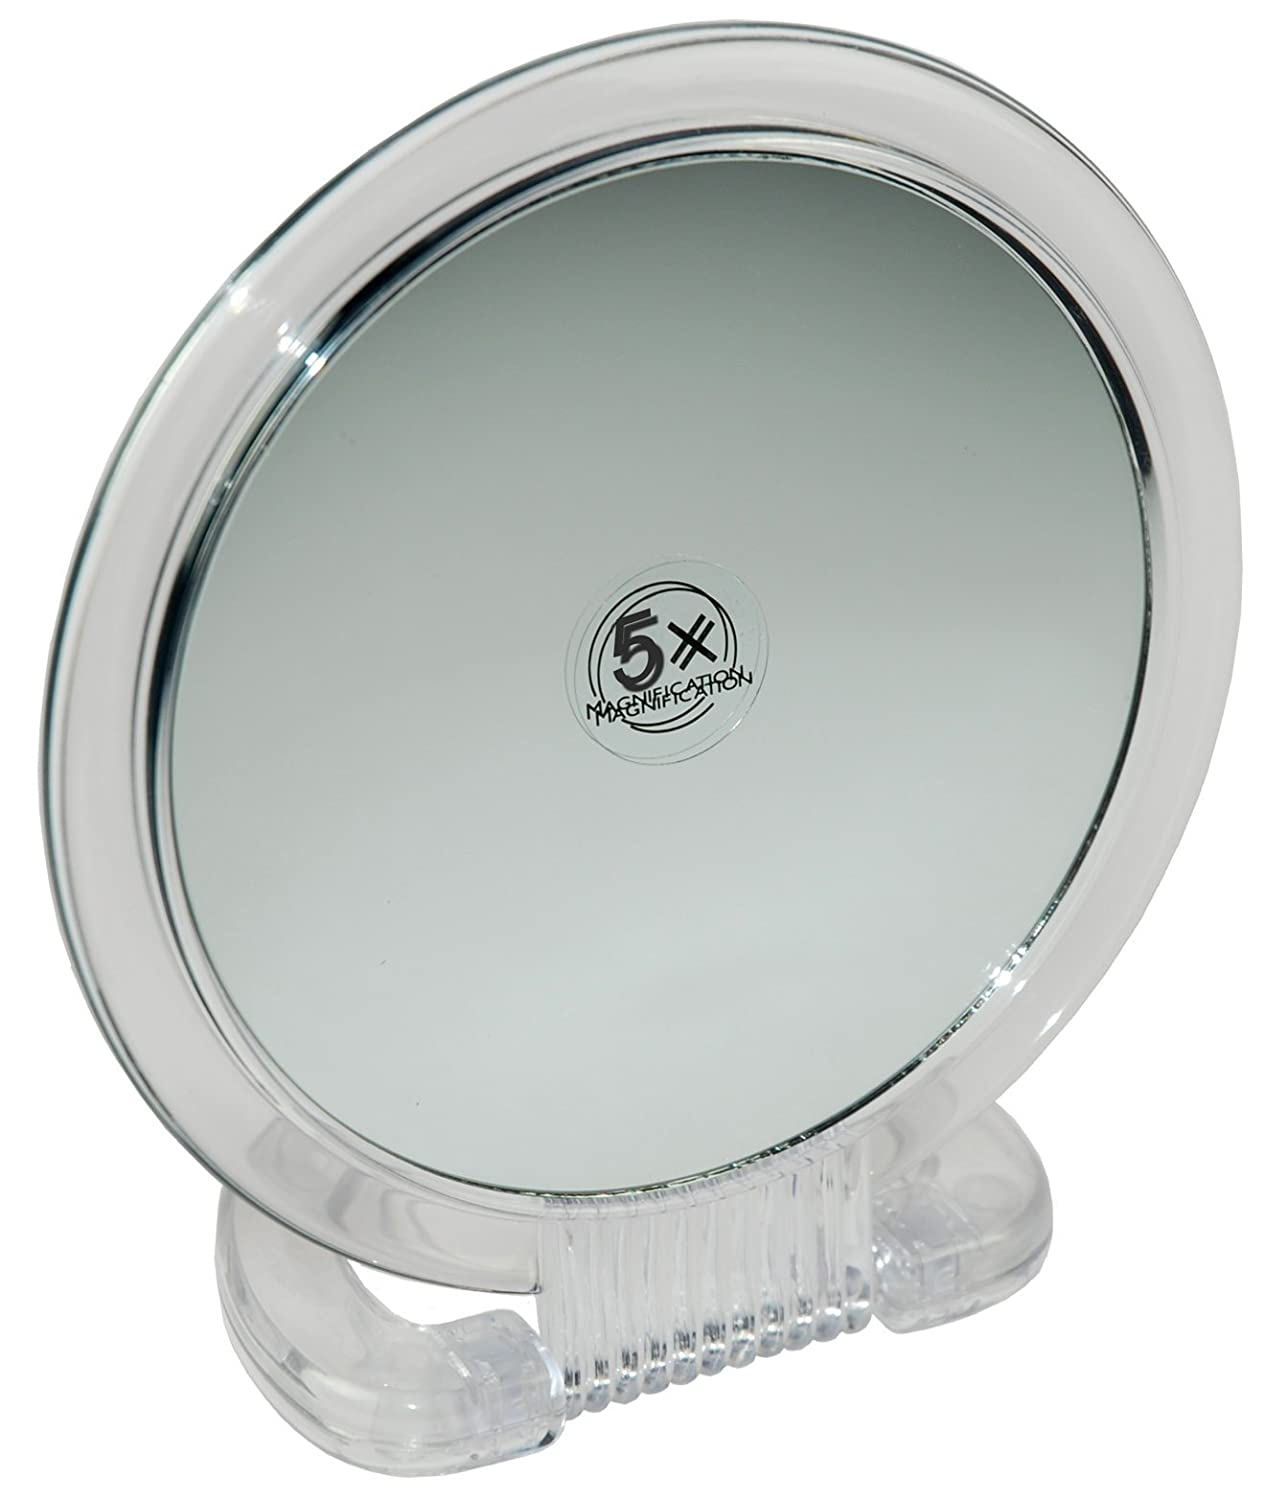 Fantasia Magnification Mirror Number 41027